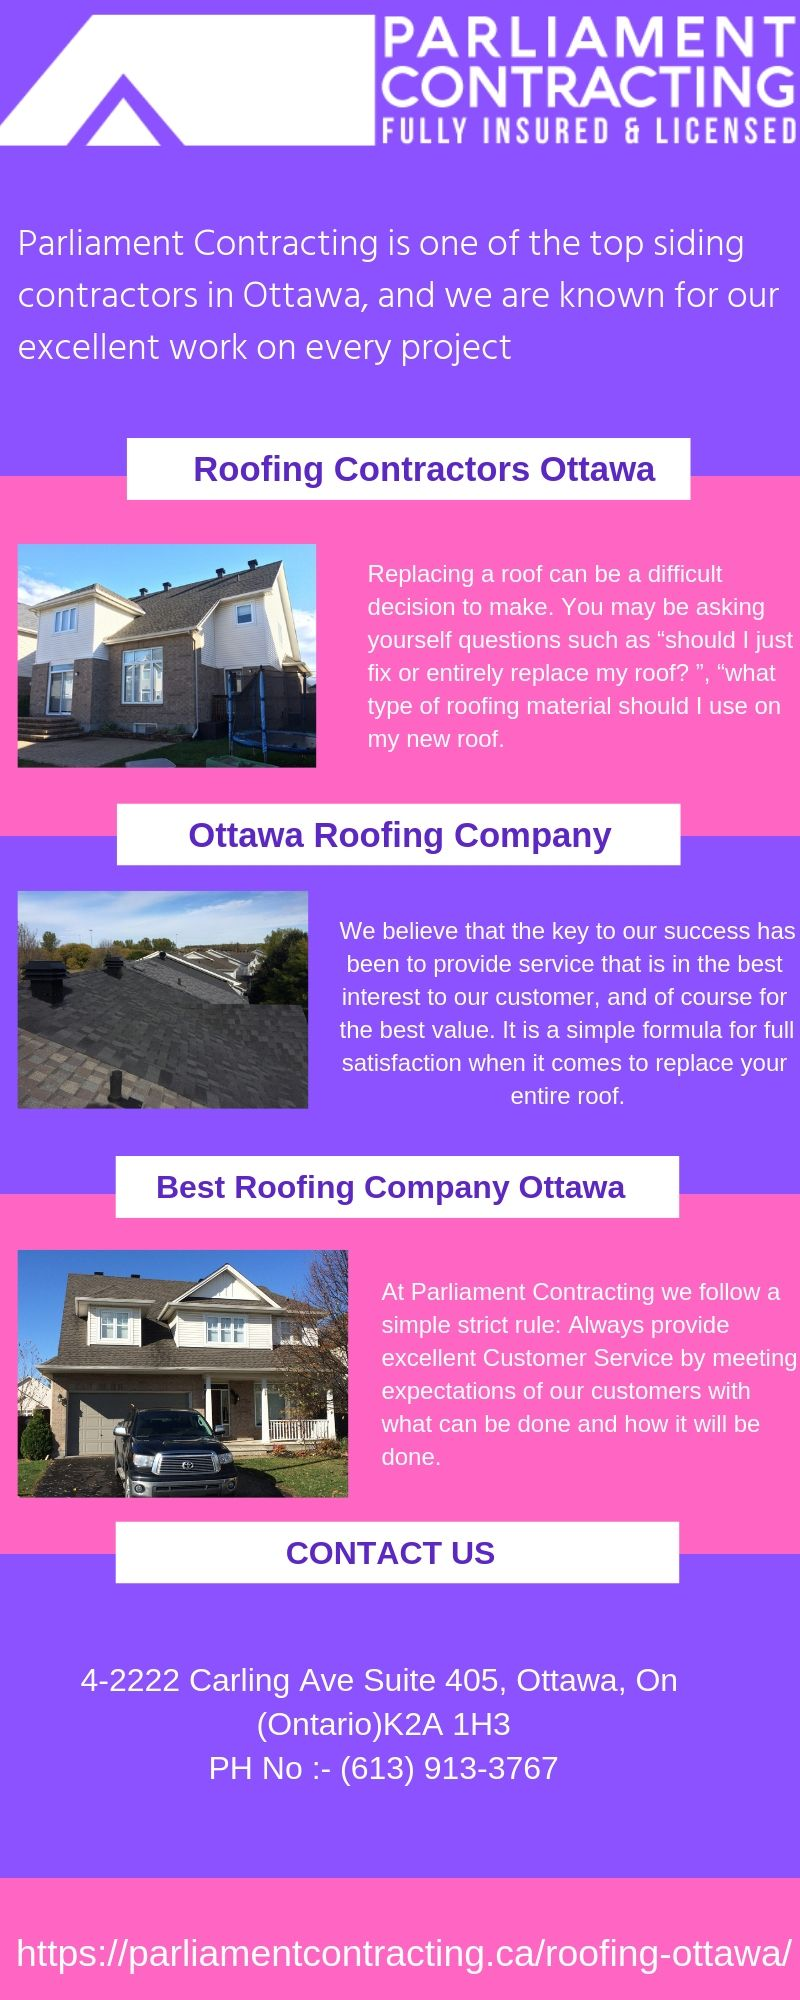 Roofing Ottawa Siding contractors, Roofing contractors